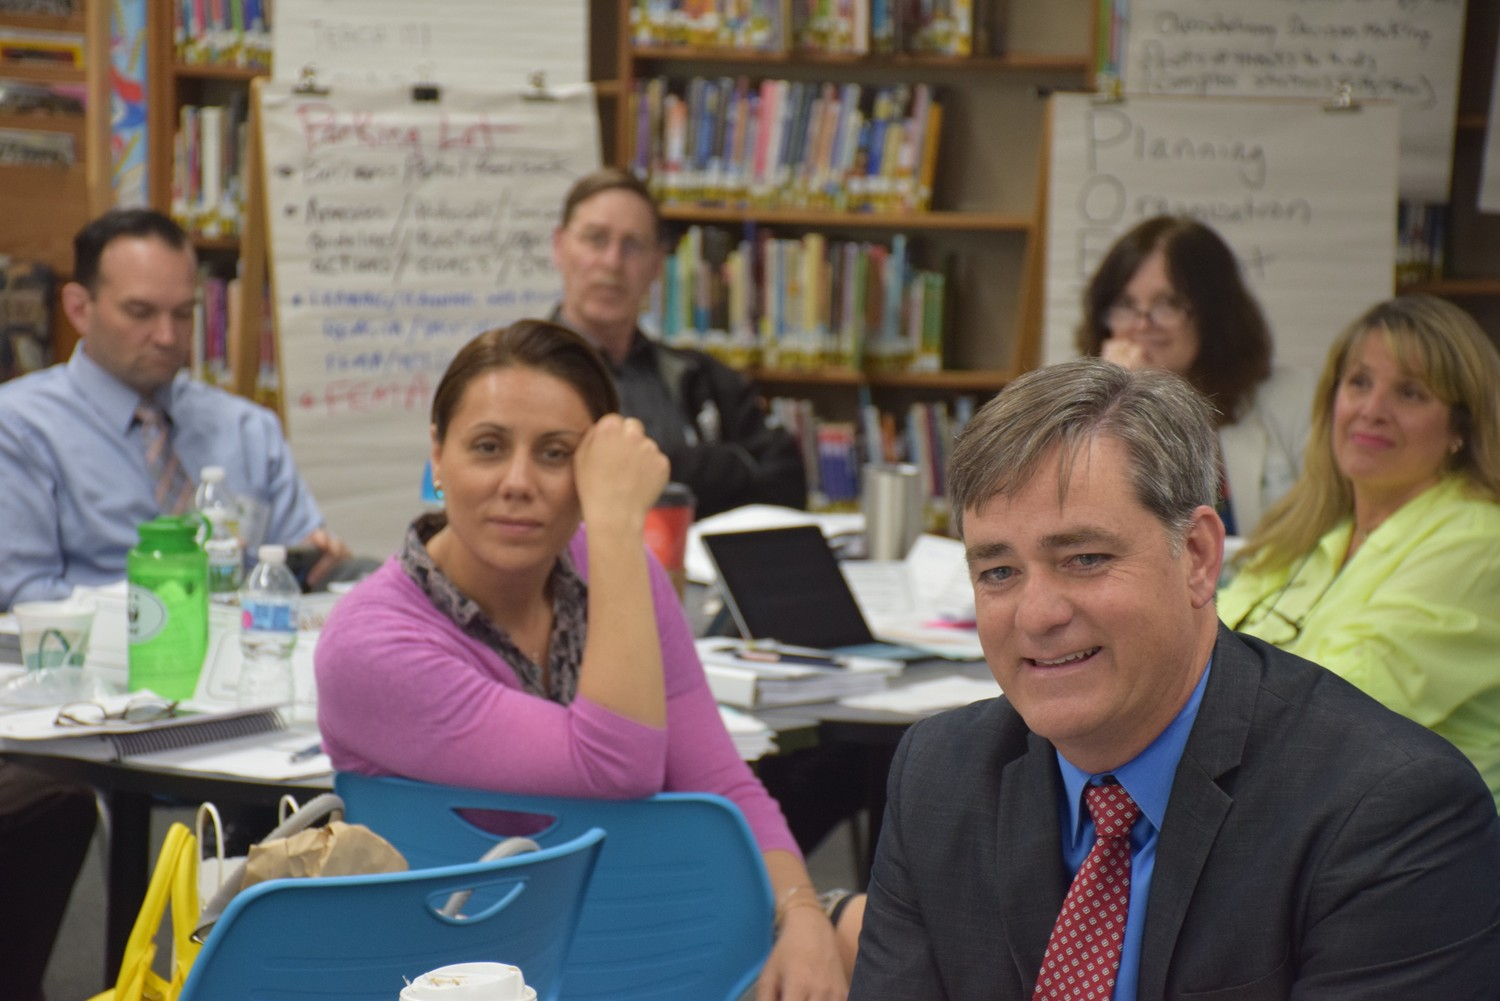 Wantagh Superintendent John McNamara and administrators gained valuable insight during the three-day seminar.